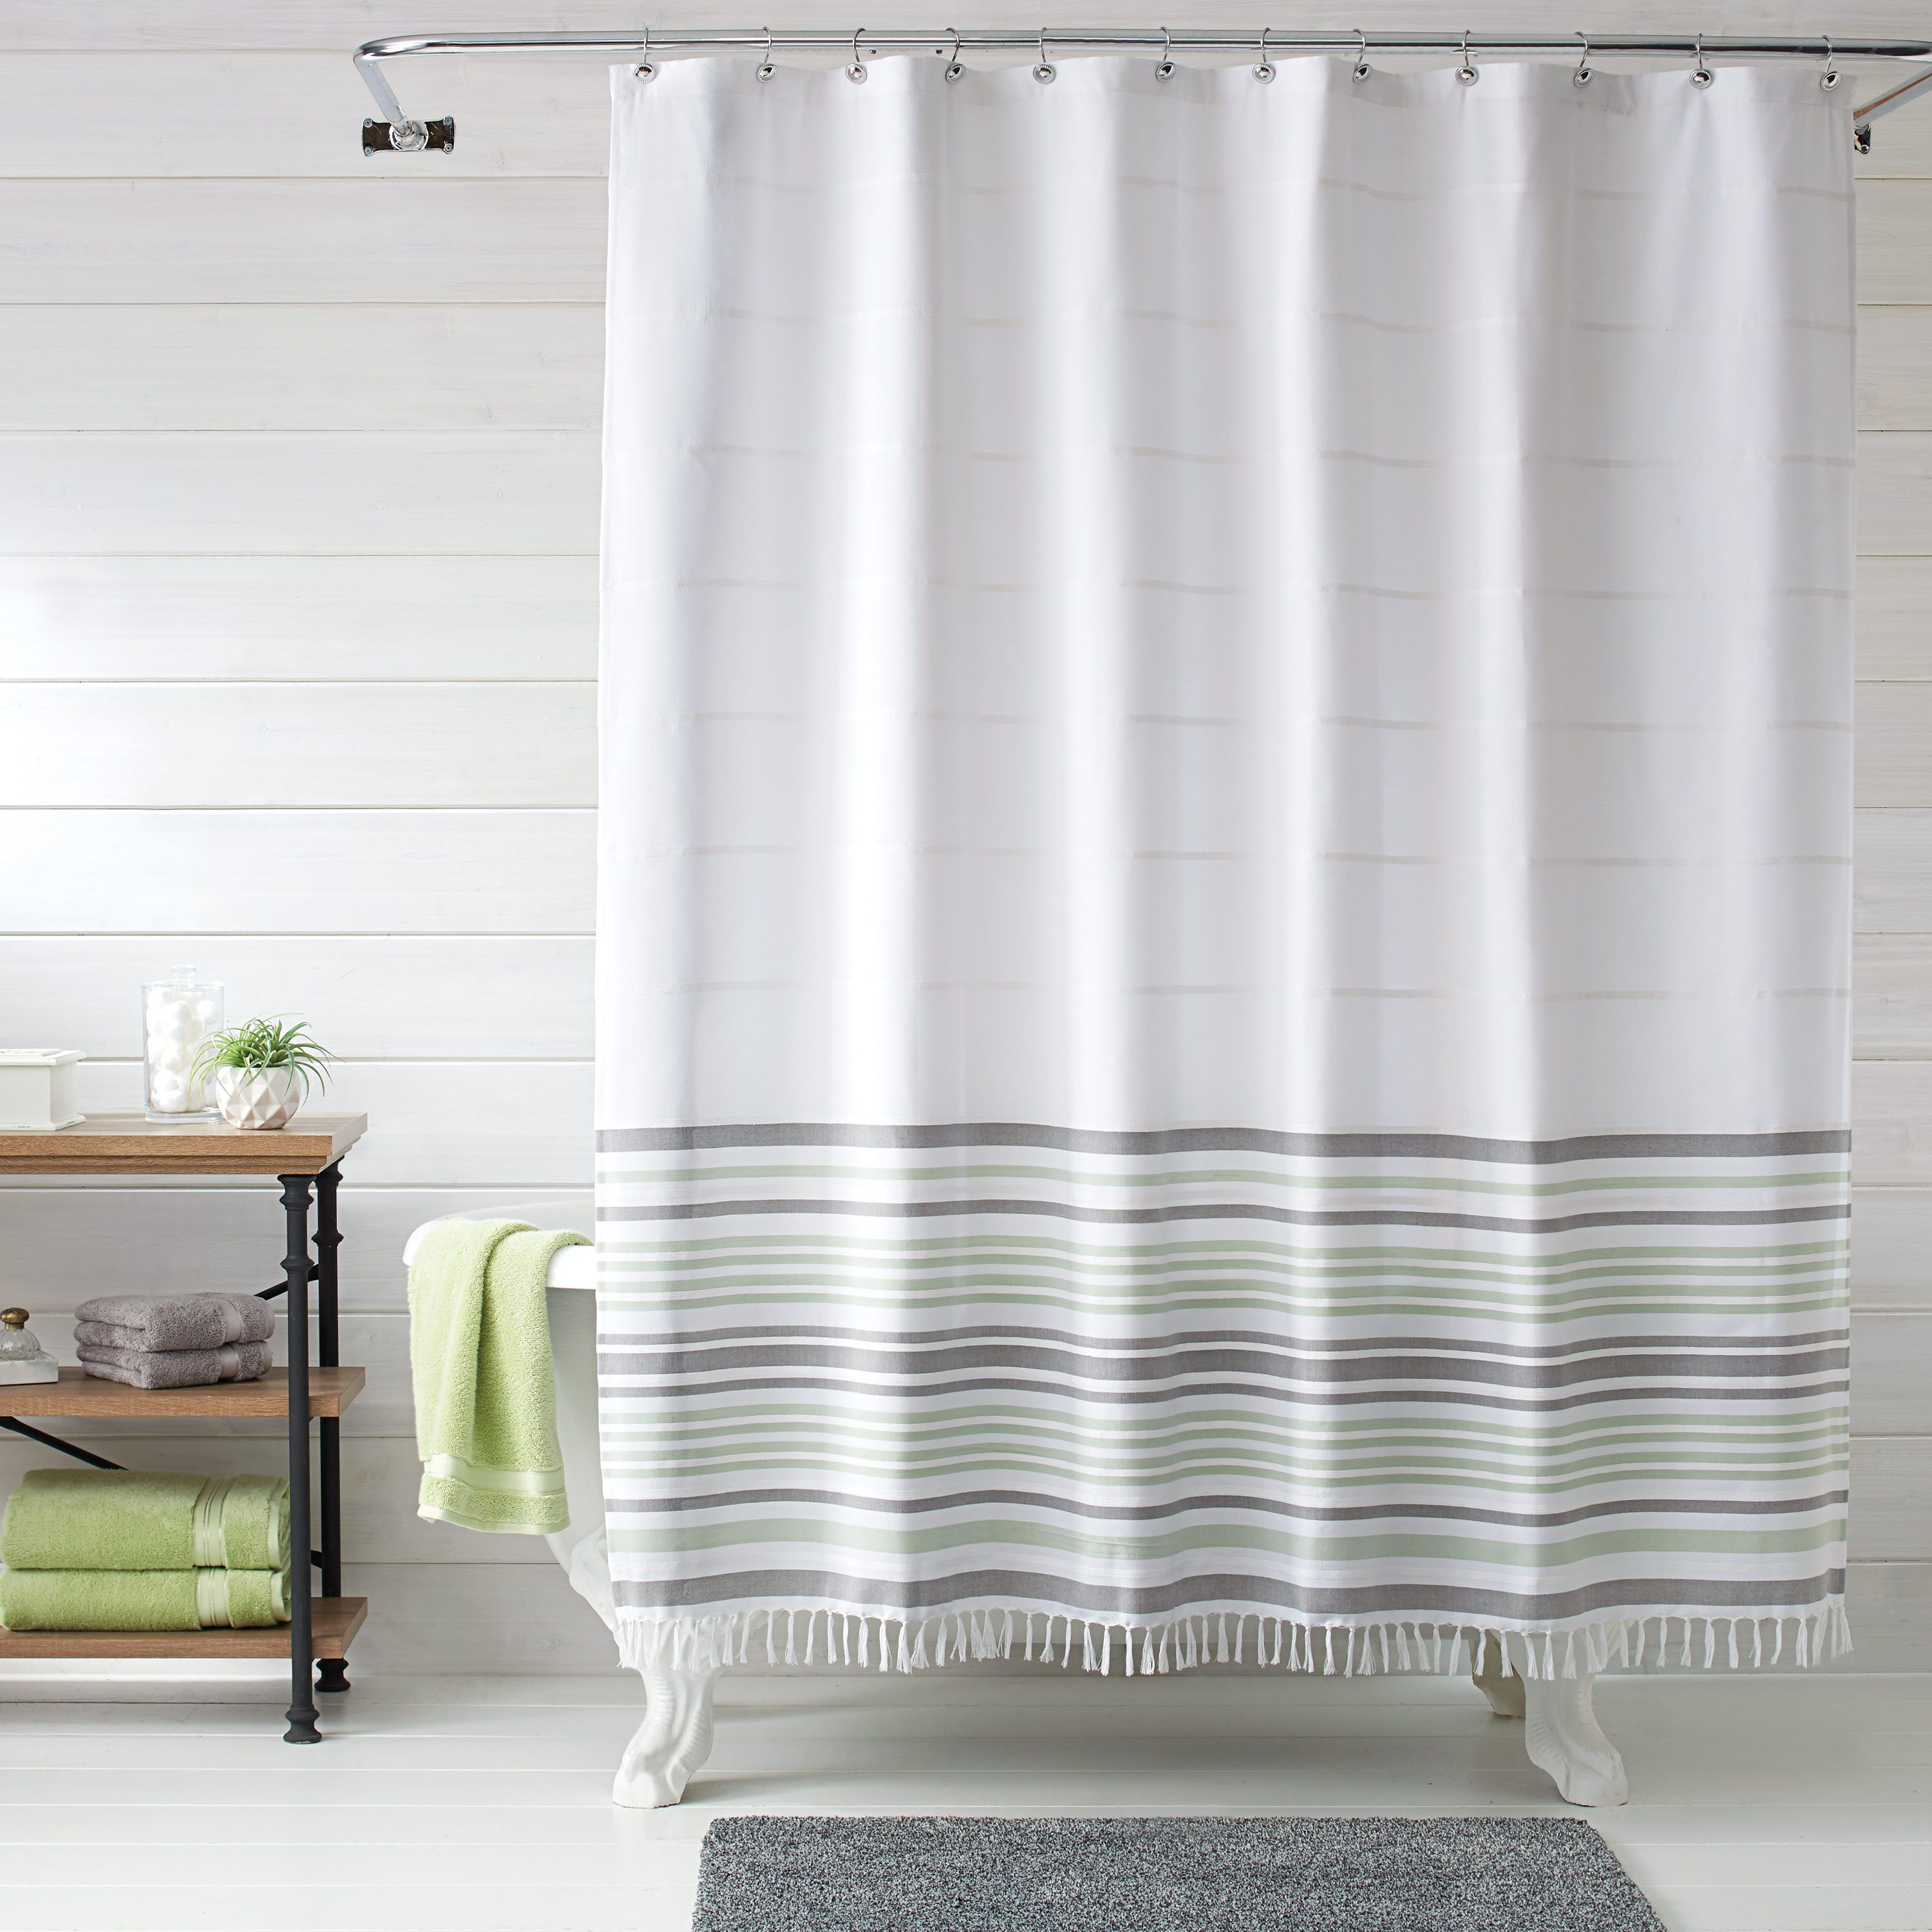 Free 2 Day Shipping On Qualified Orders Over 35 Buy Better Homes Gardens Turkish Stri In 2020 Gray Shower Curtains Striped Shower Curtains Designer Shower Curtains